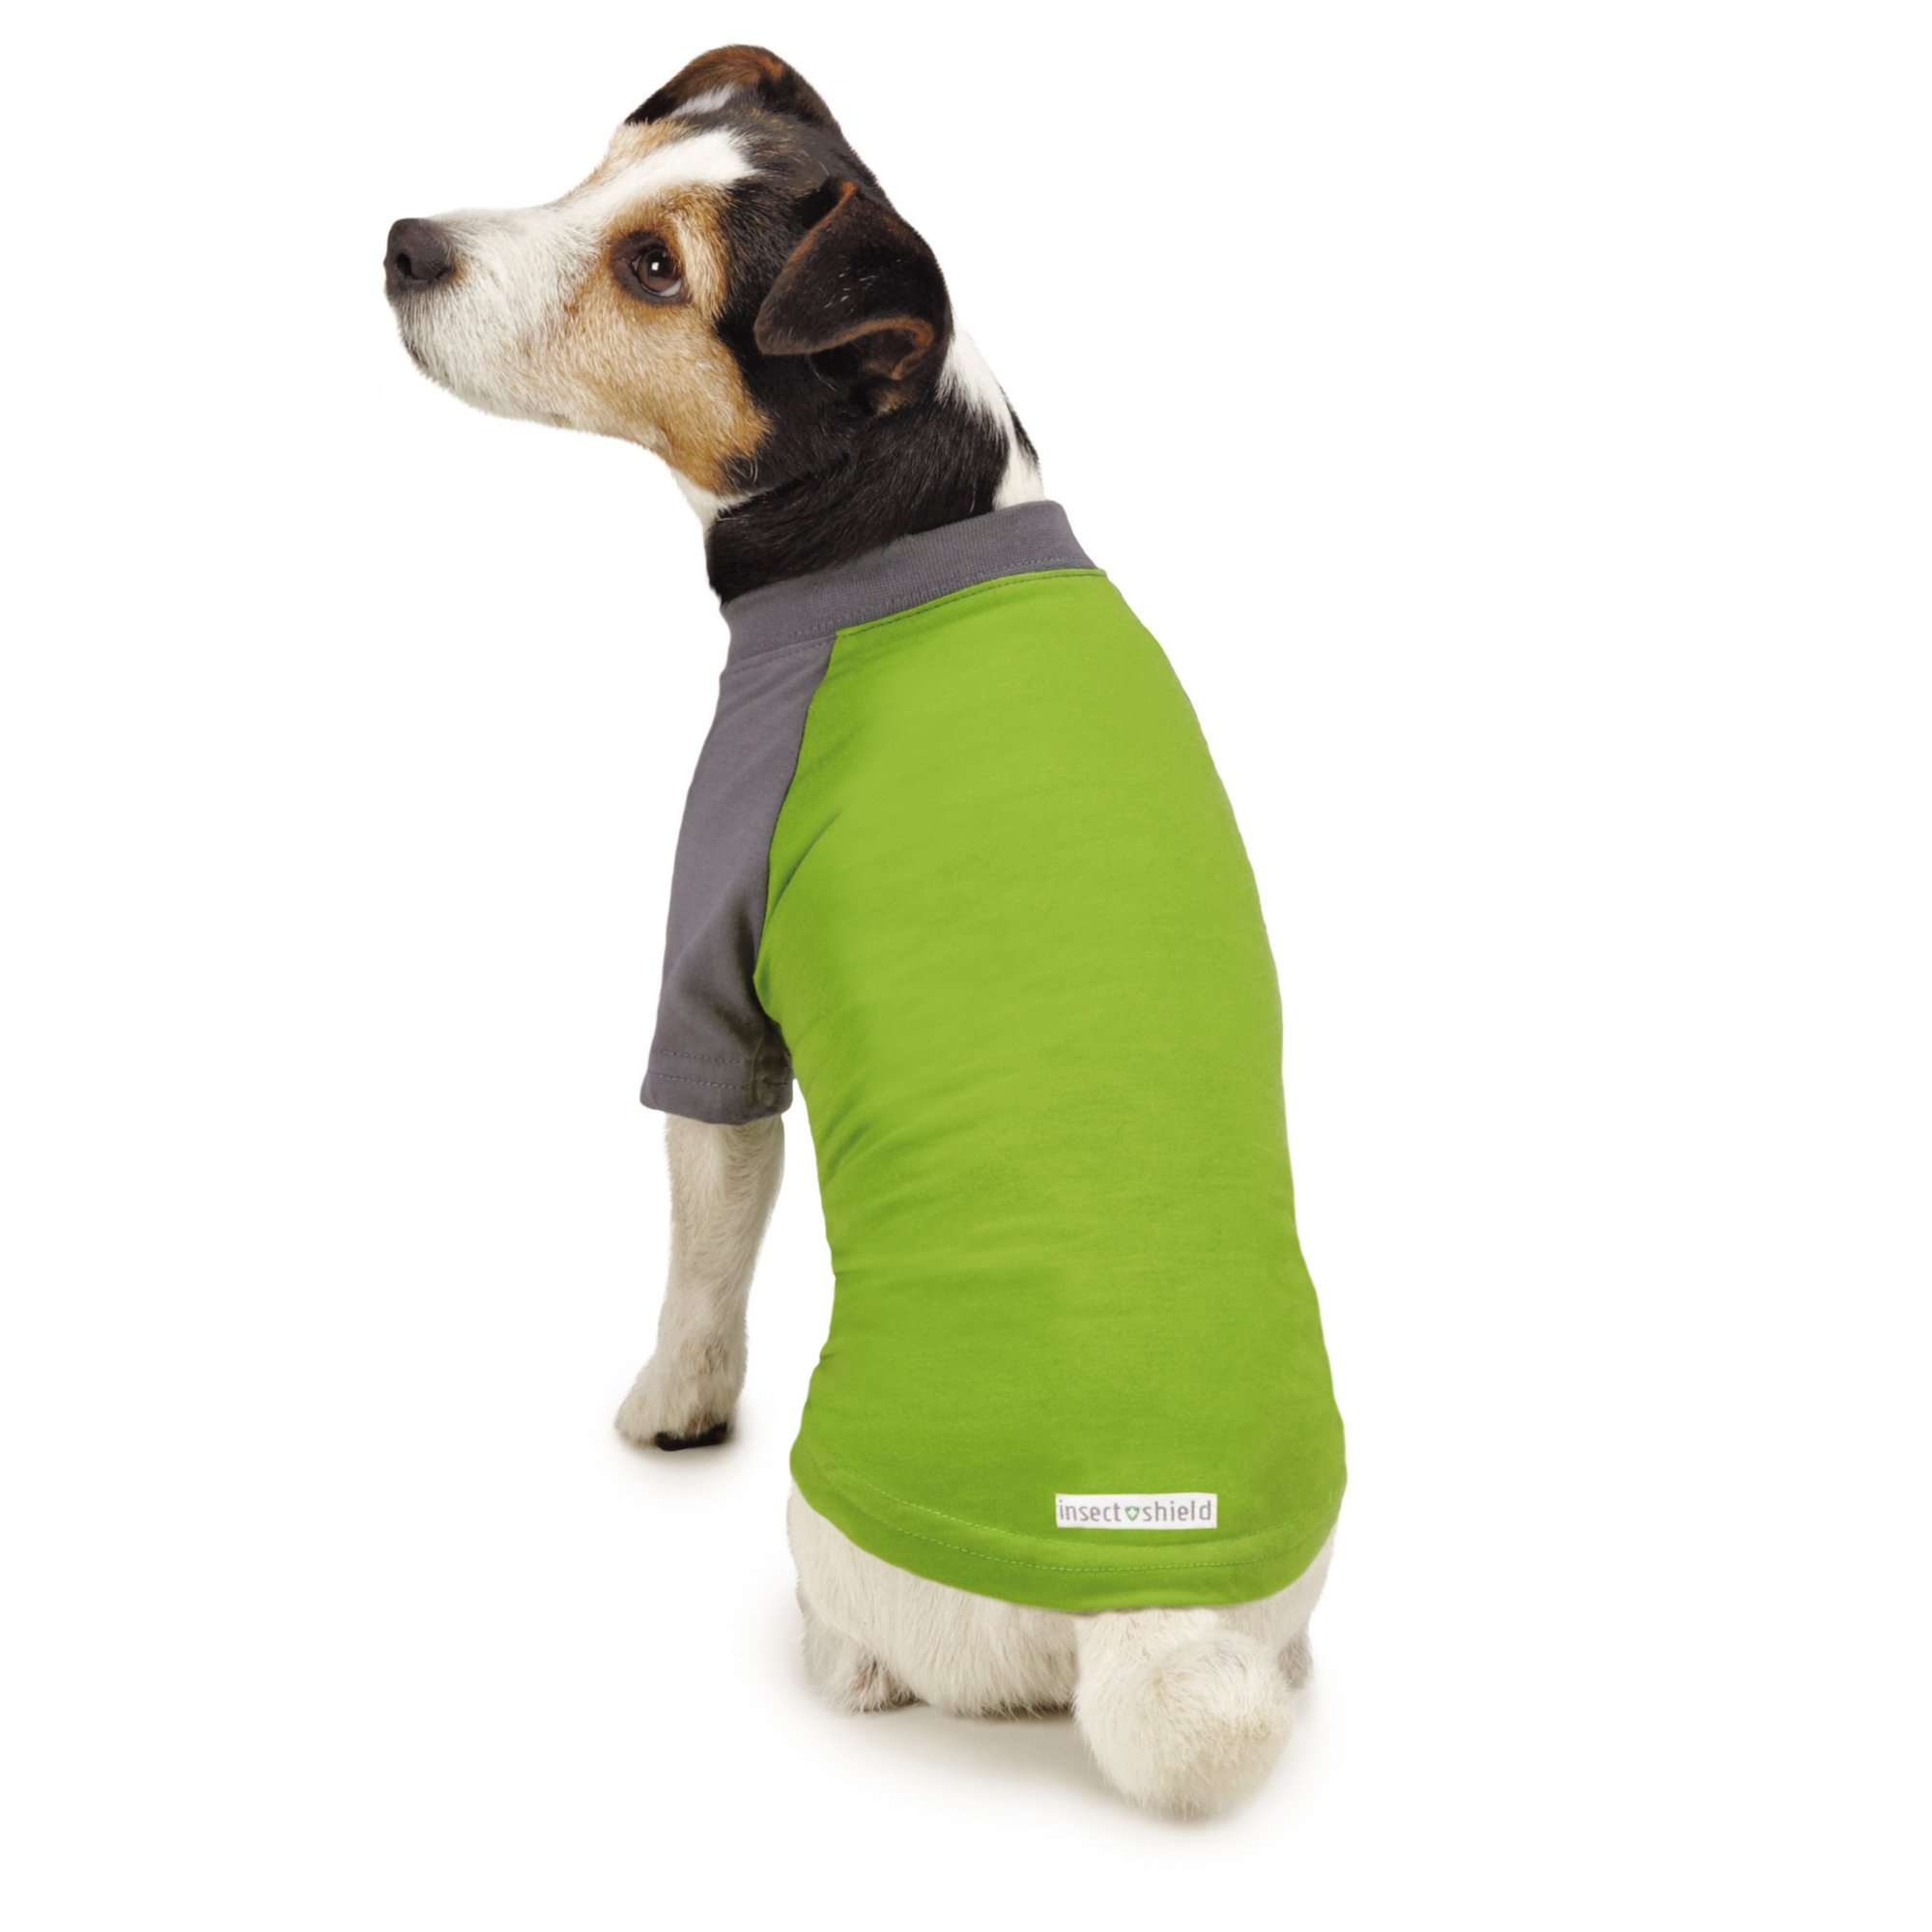 PetEdge Insect Shield Pest Repellent Tee